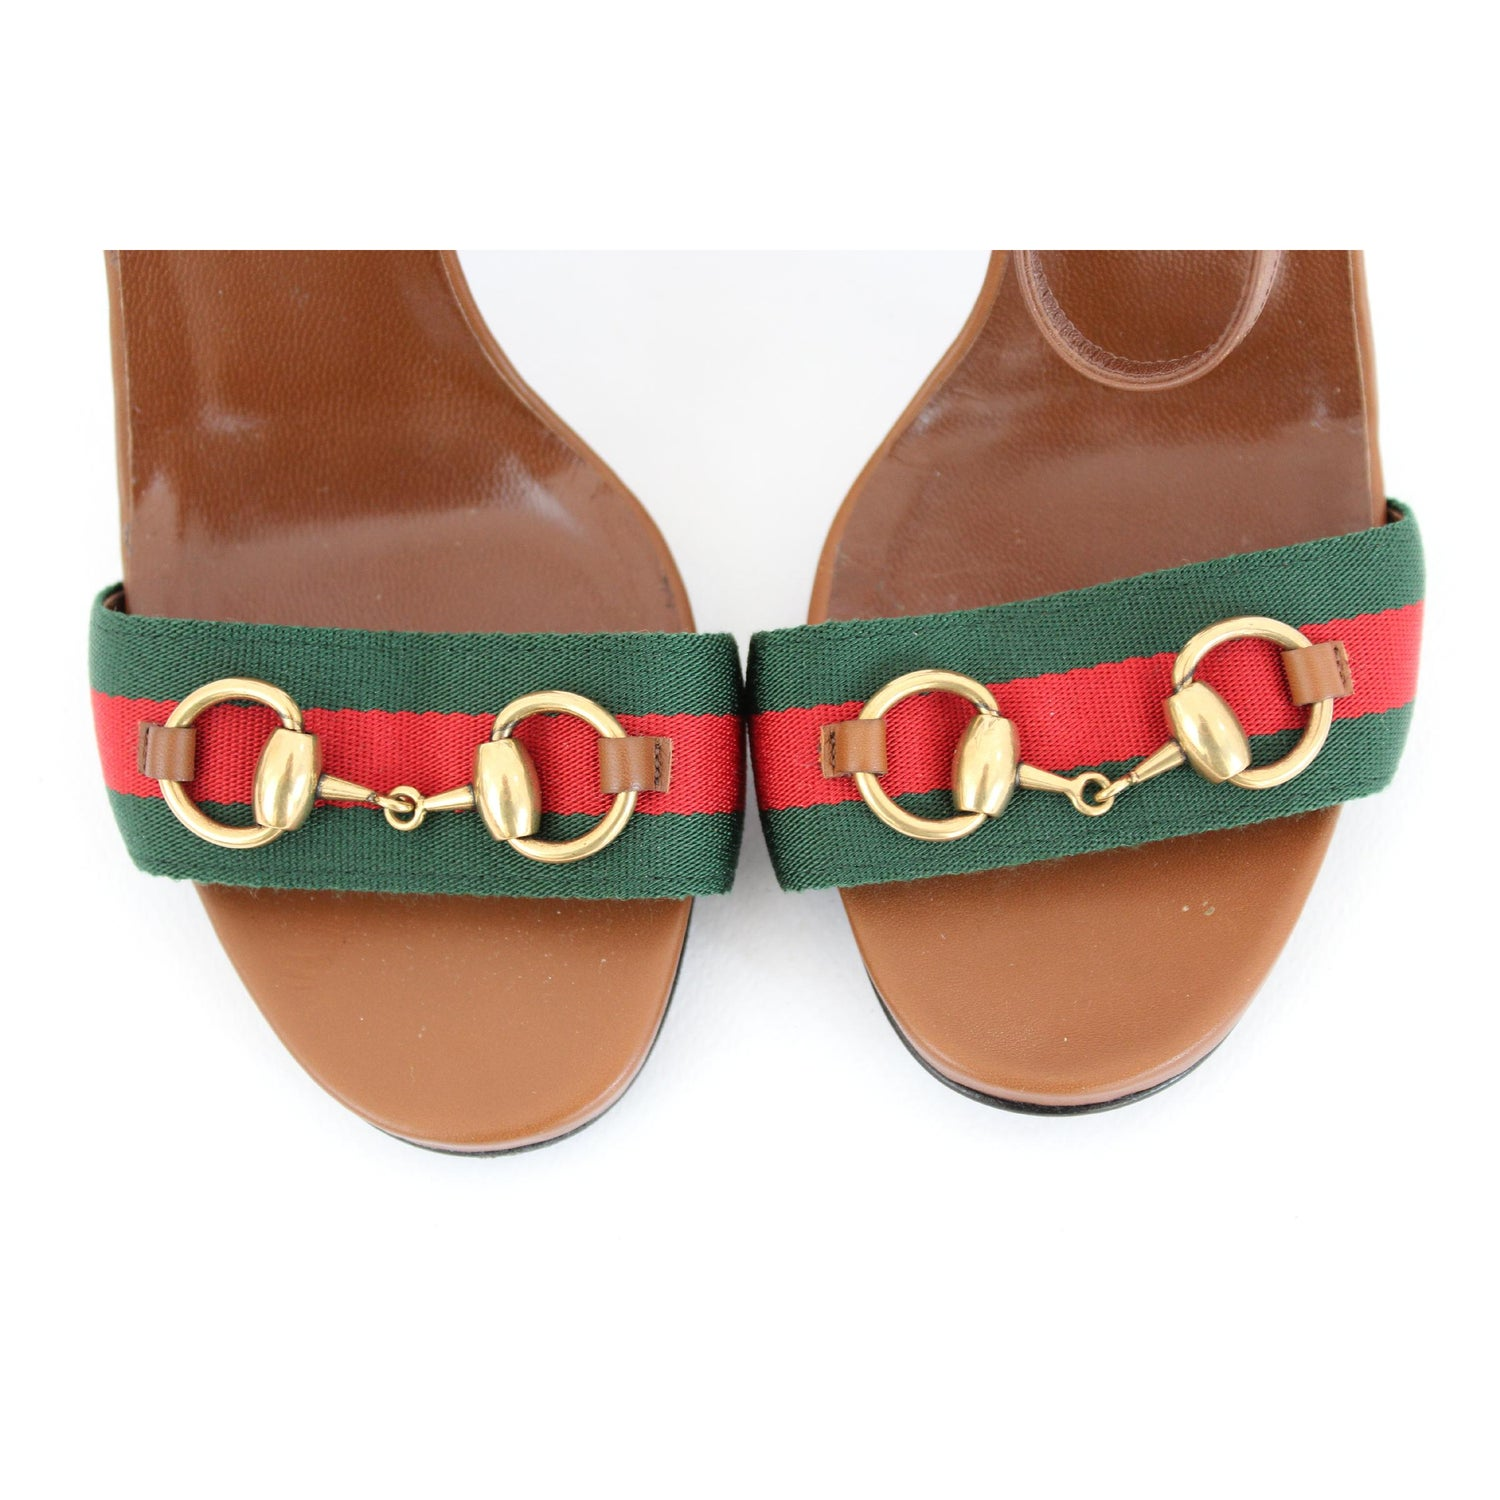 b192fa336 New Gucci Lifford Brown Leather Canvas Sandals Heels Pump Shoes at 1stdibs